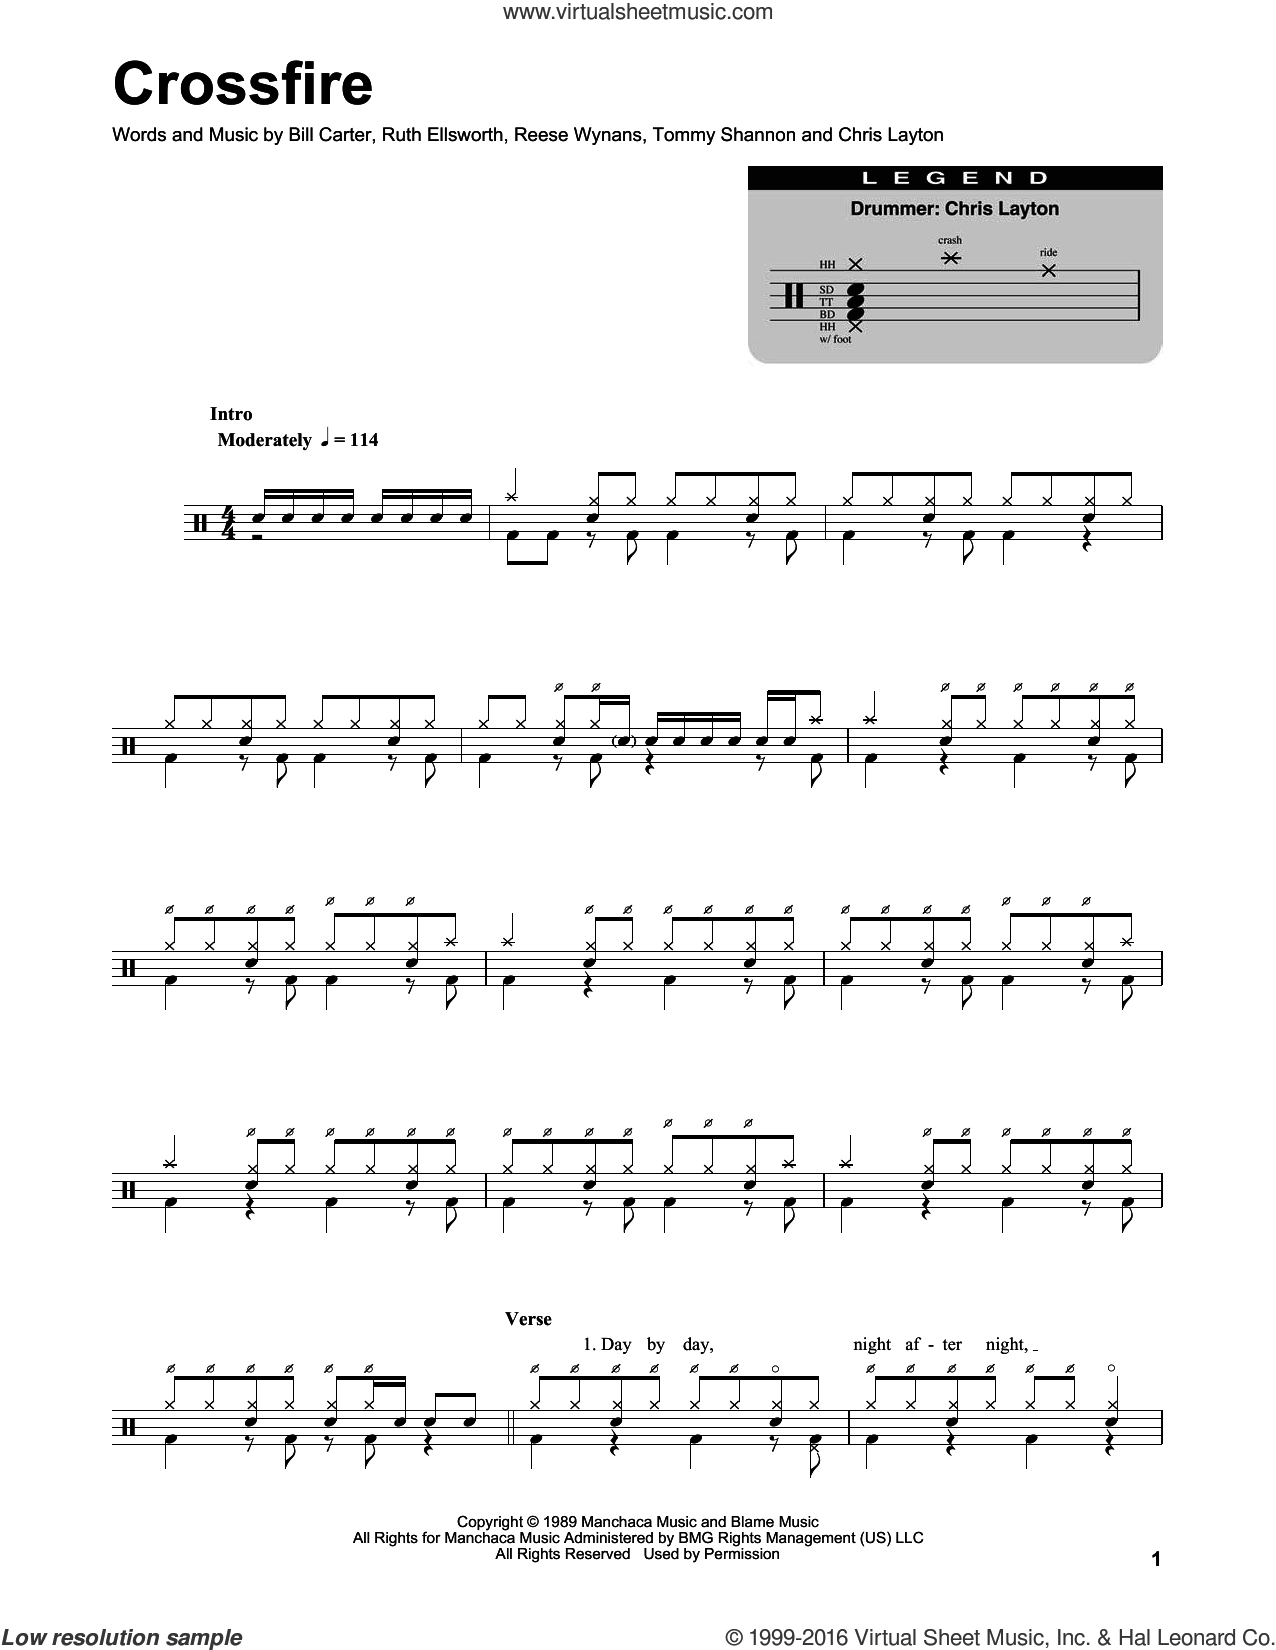 Crossfire sheet music for drums by Stevie Ray Vaughan, Bill Carter, Chris Layton, Reese Wynans, Ruth Ellsworth and Tommy Shannon, intermediate skill level